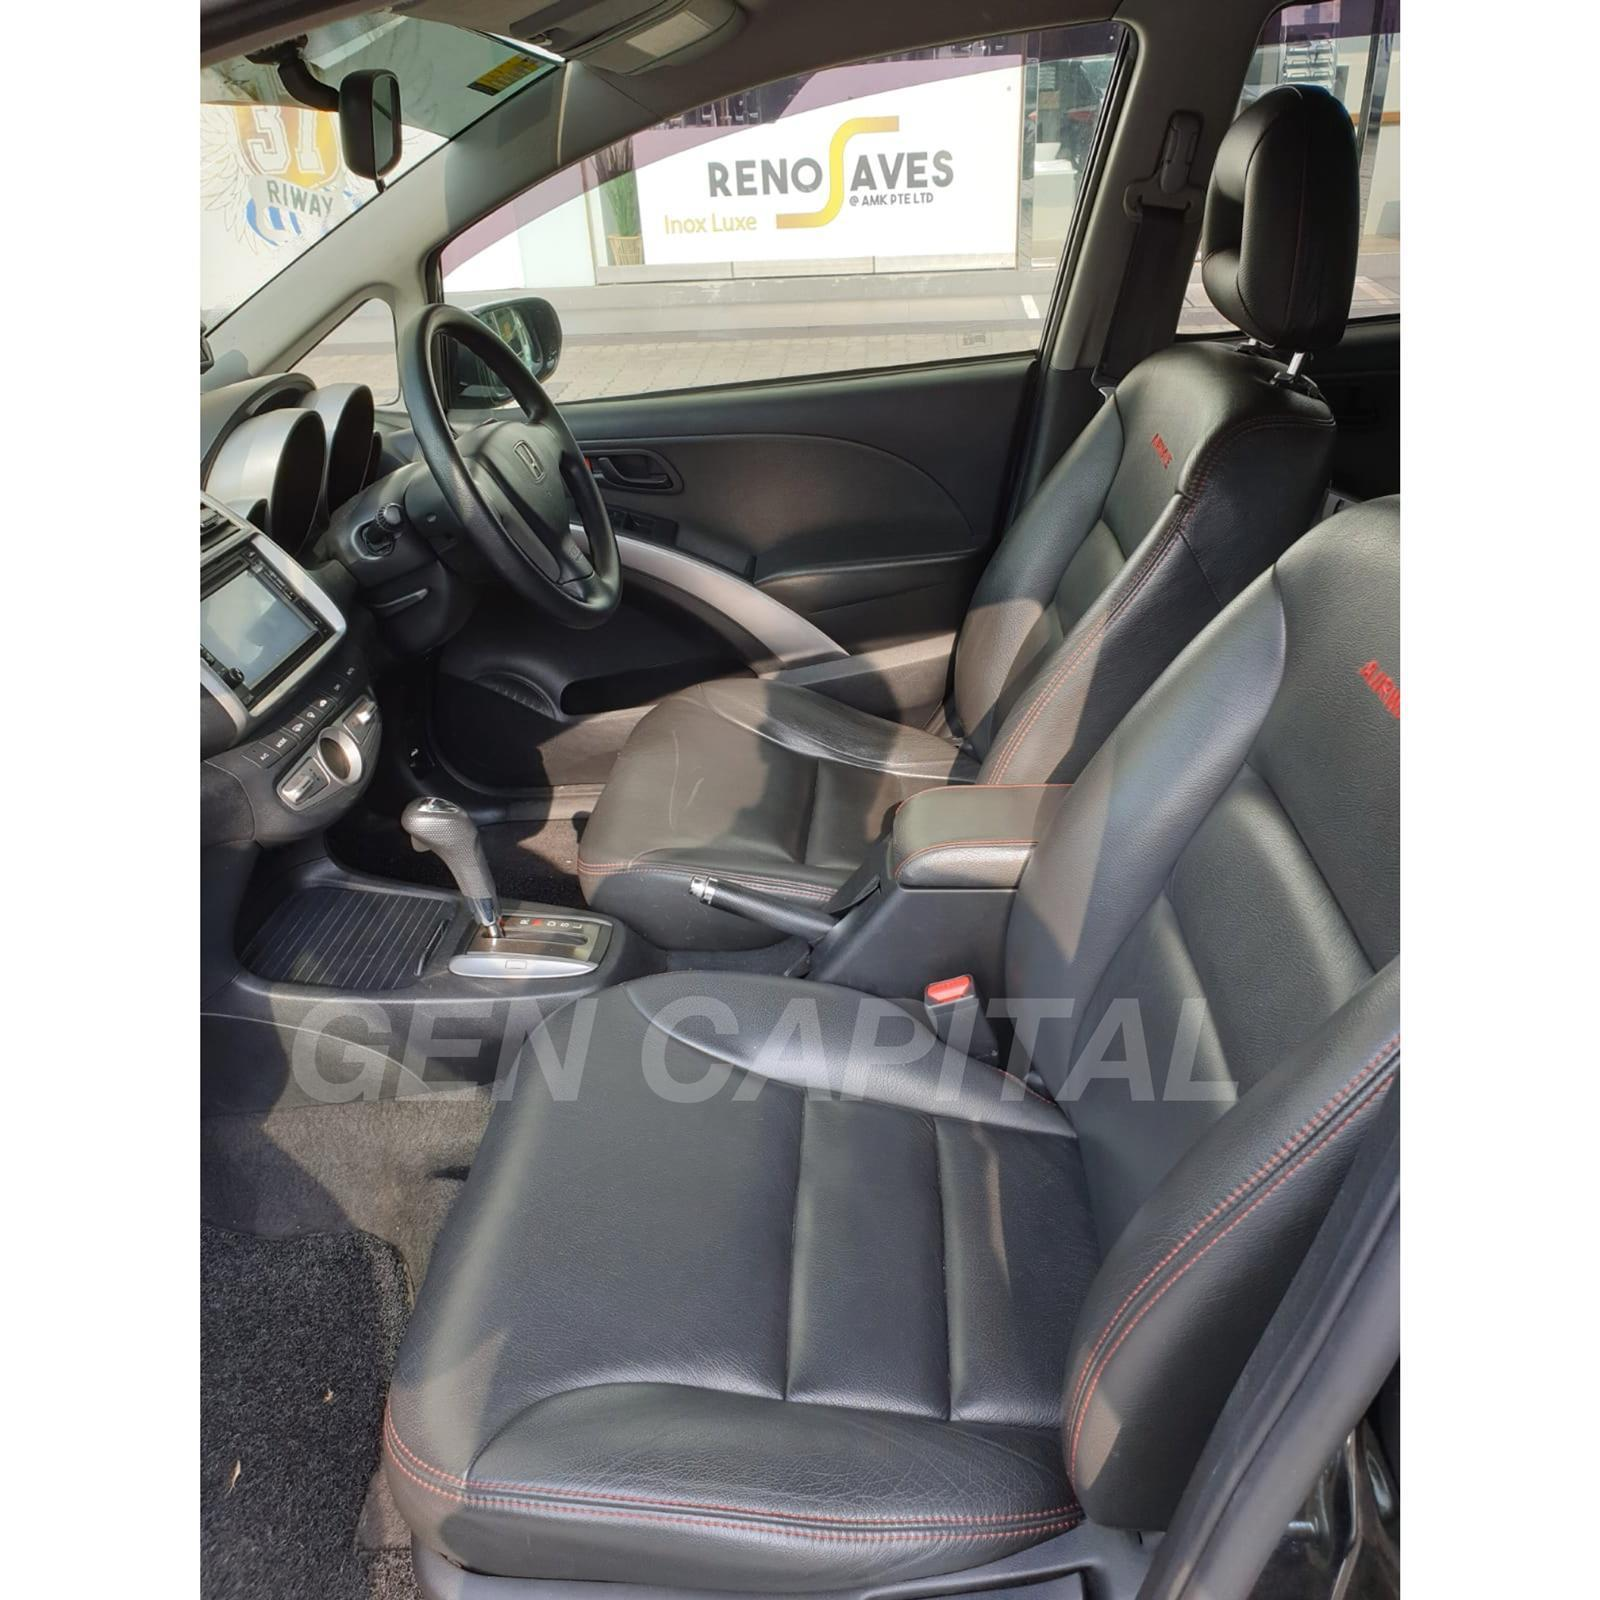 Honda Airwave 1.6A • Flash Deal! Limited Units Grab & Gojek Ready !! Extra Large Boot Space and Fuel Efficient!